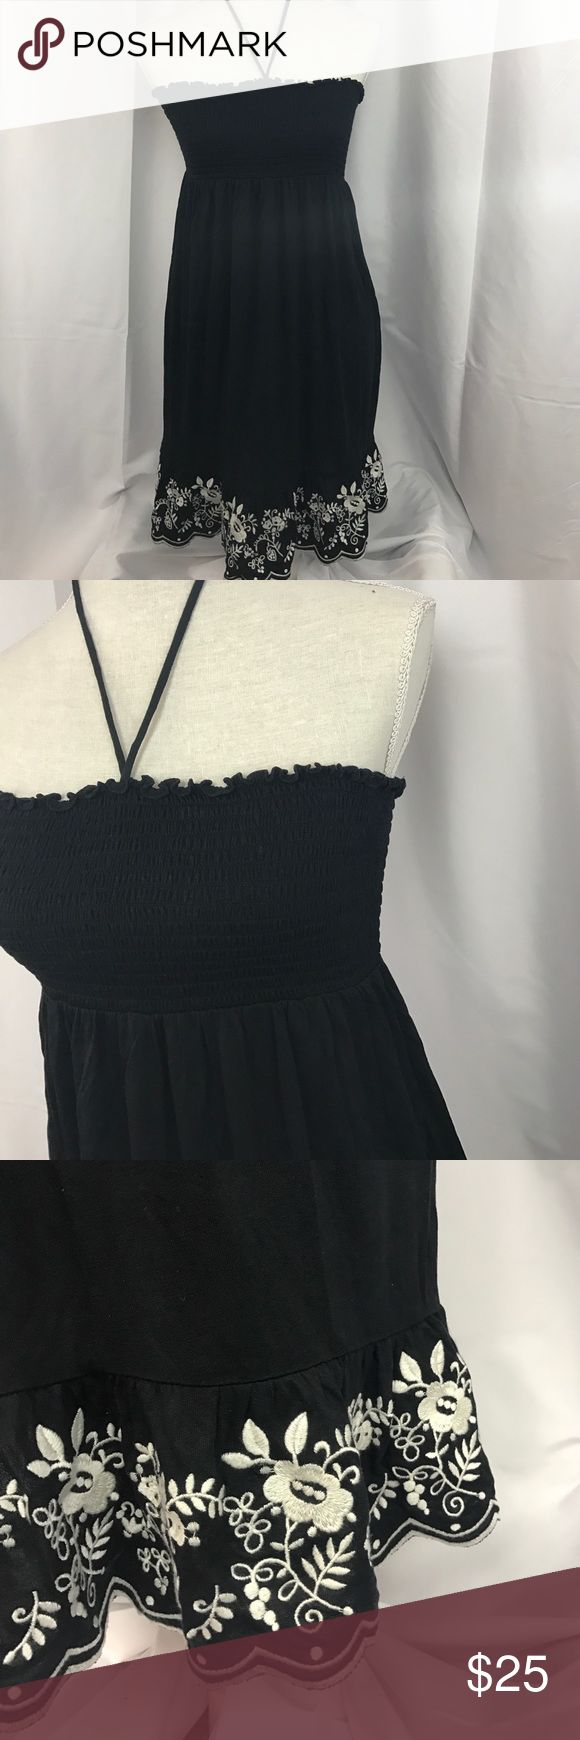 Juicy Couture szM black tube top style dress Excellent used condition Juicy Couture szM black tube top style dress w/pretty embroidered bottom...ties around neck... Juicy Couture Dresses